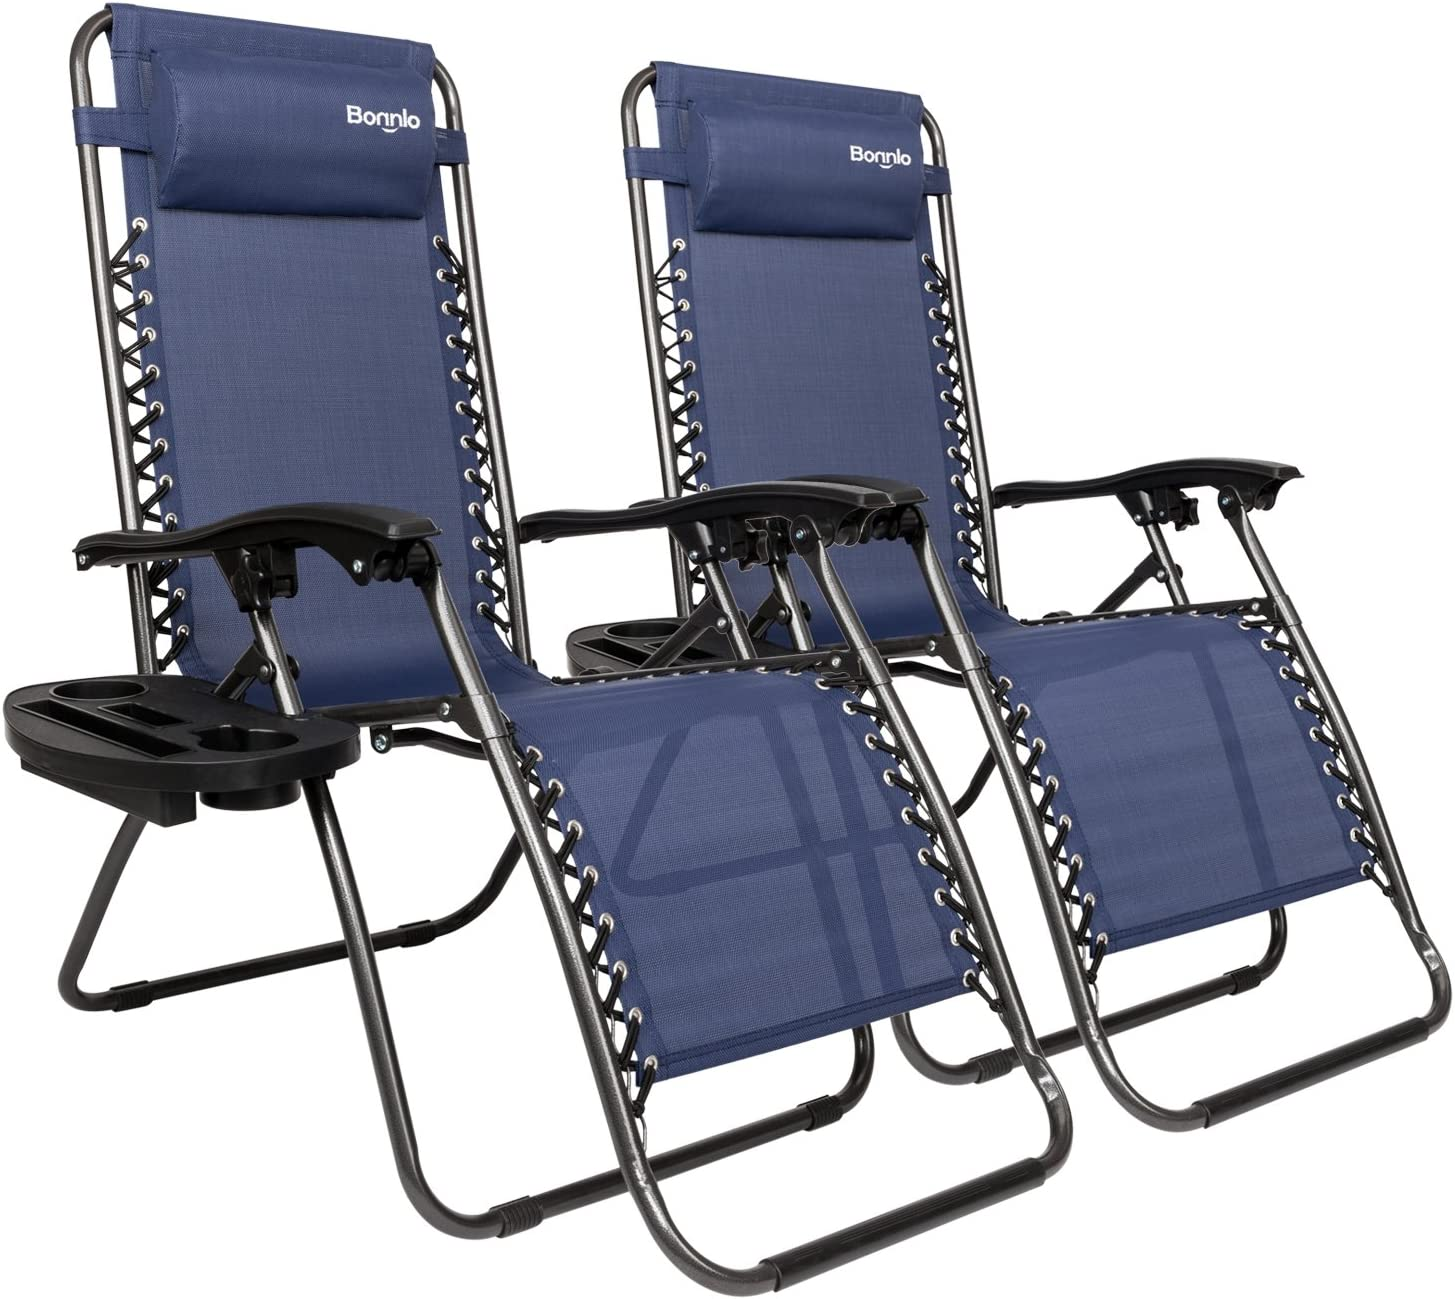 Portable Gravity Folding Lounge Beach Chairs Outdoor Camping Recliner Tray Tool